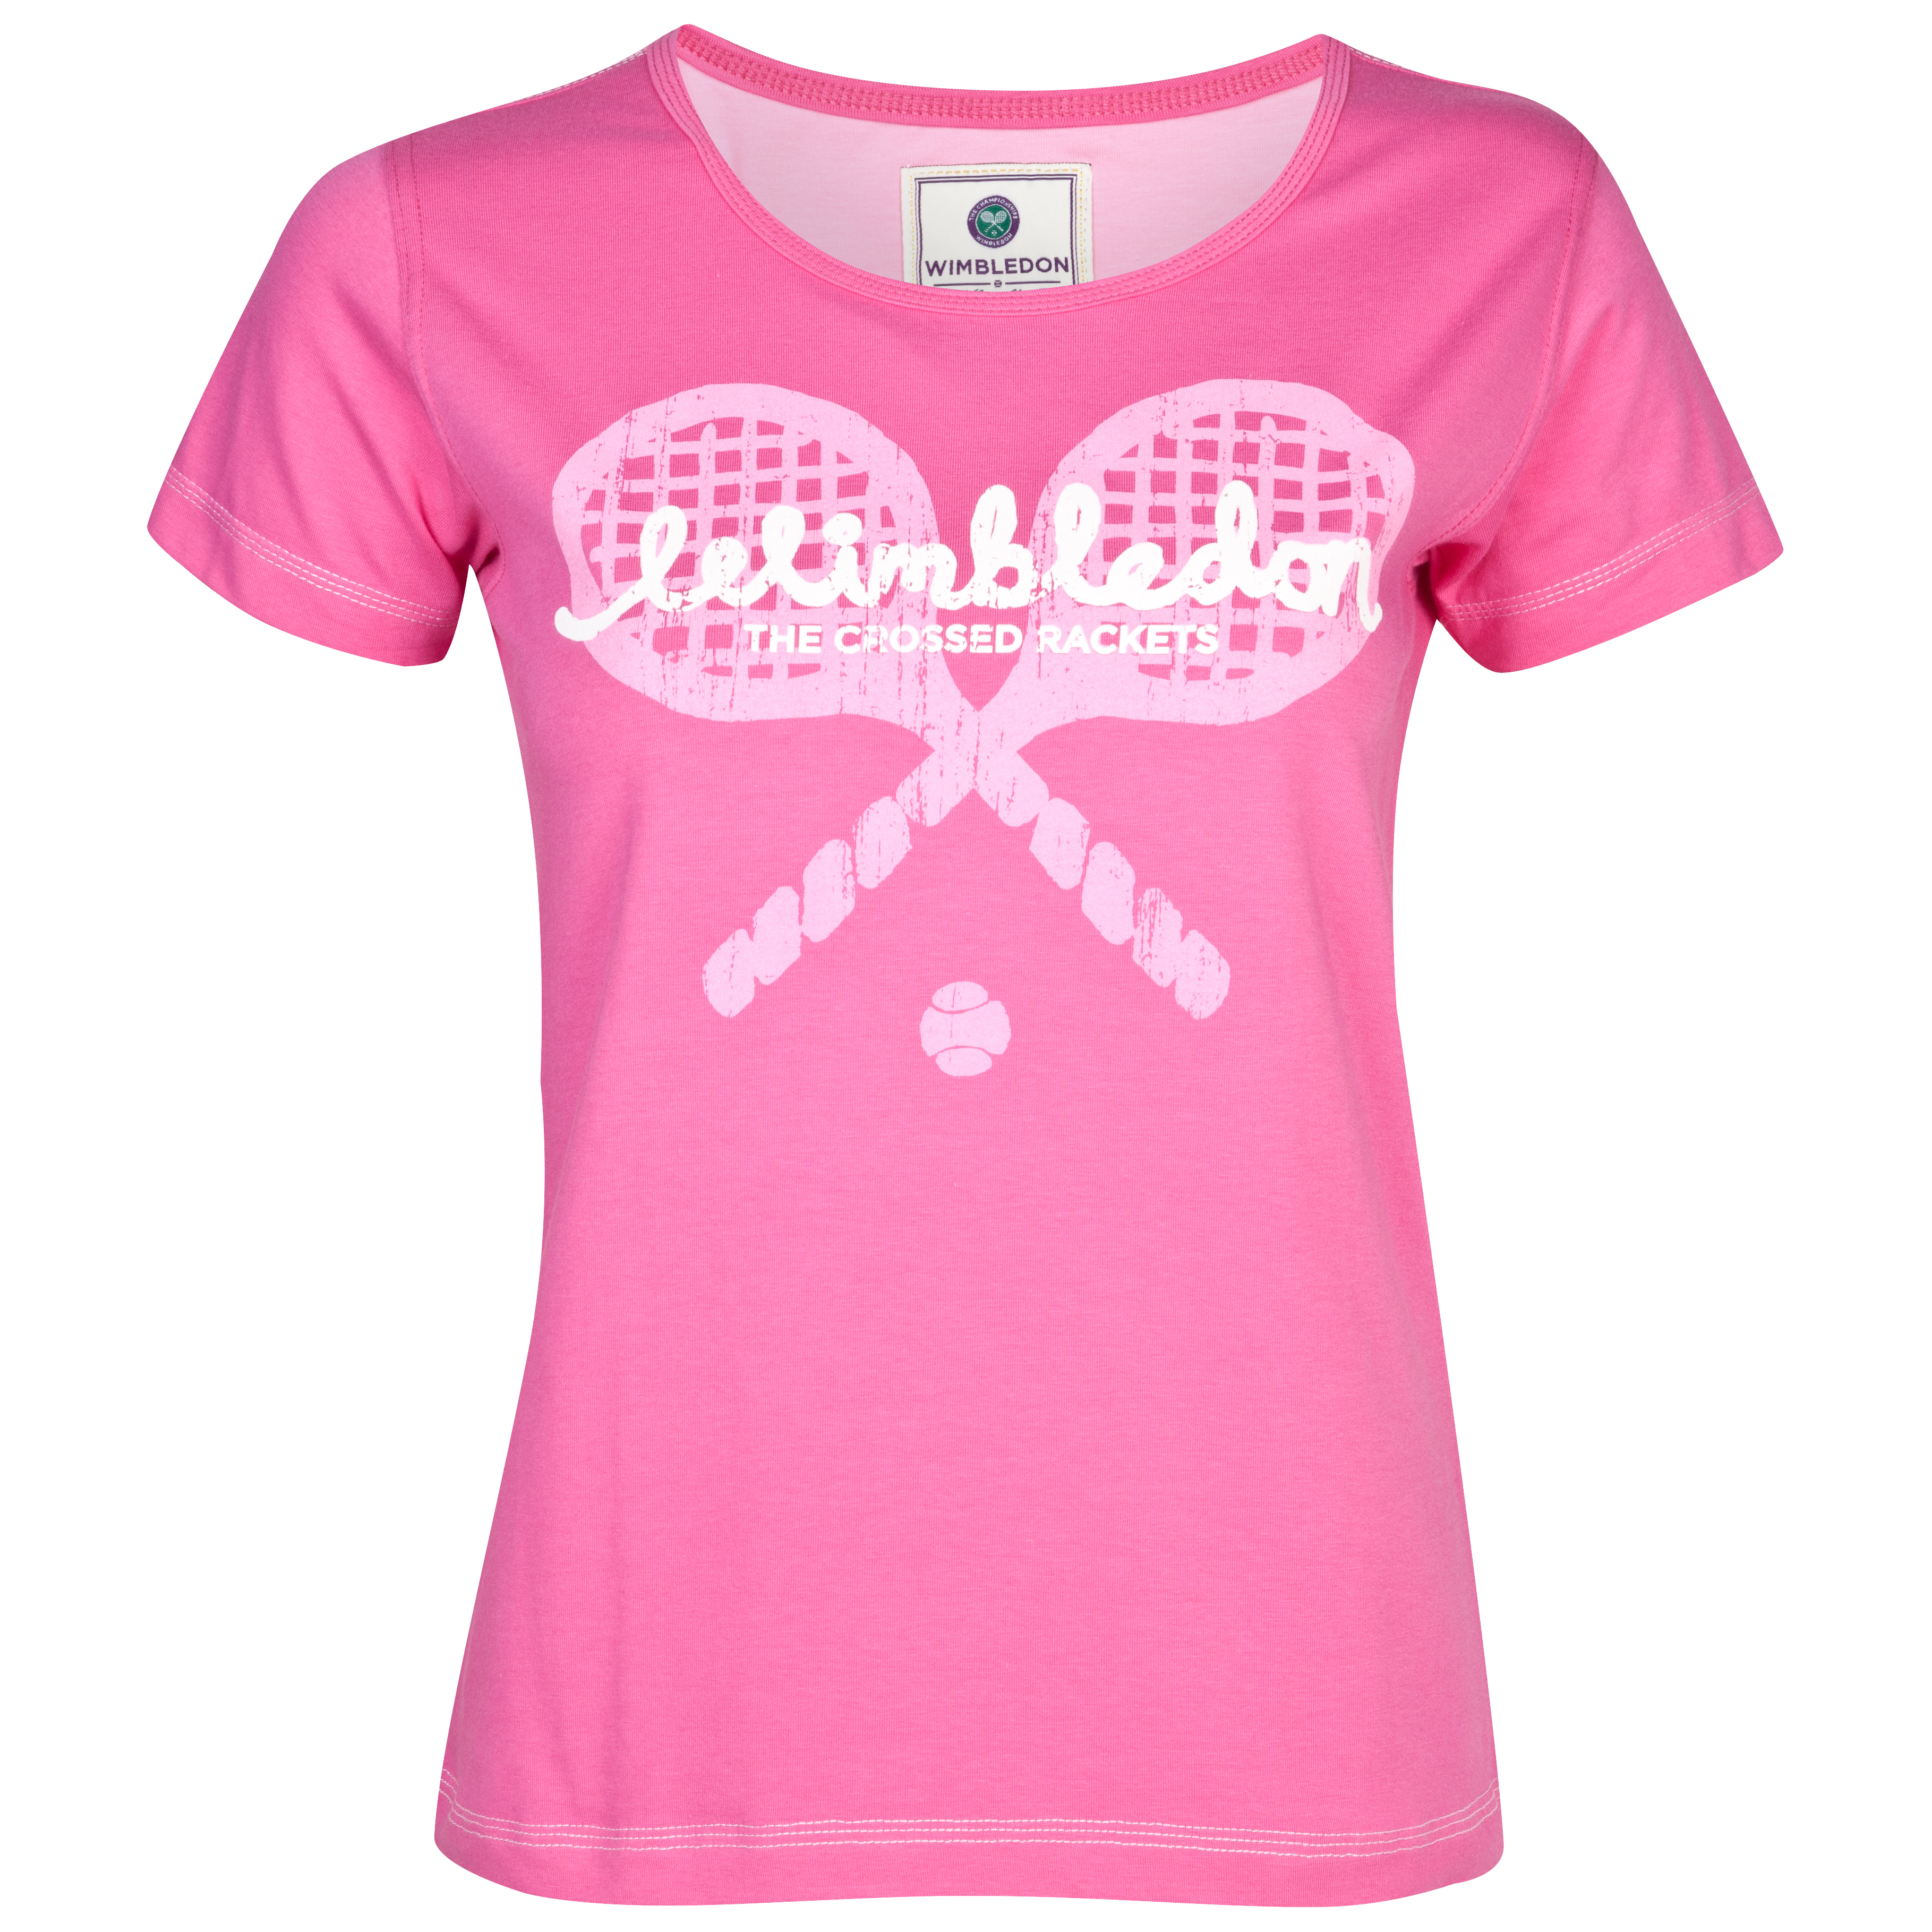 Wimbledon Large Rackets Print T-Shirt - Ladies - Bright Pink